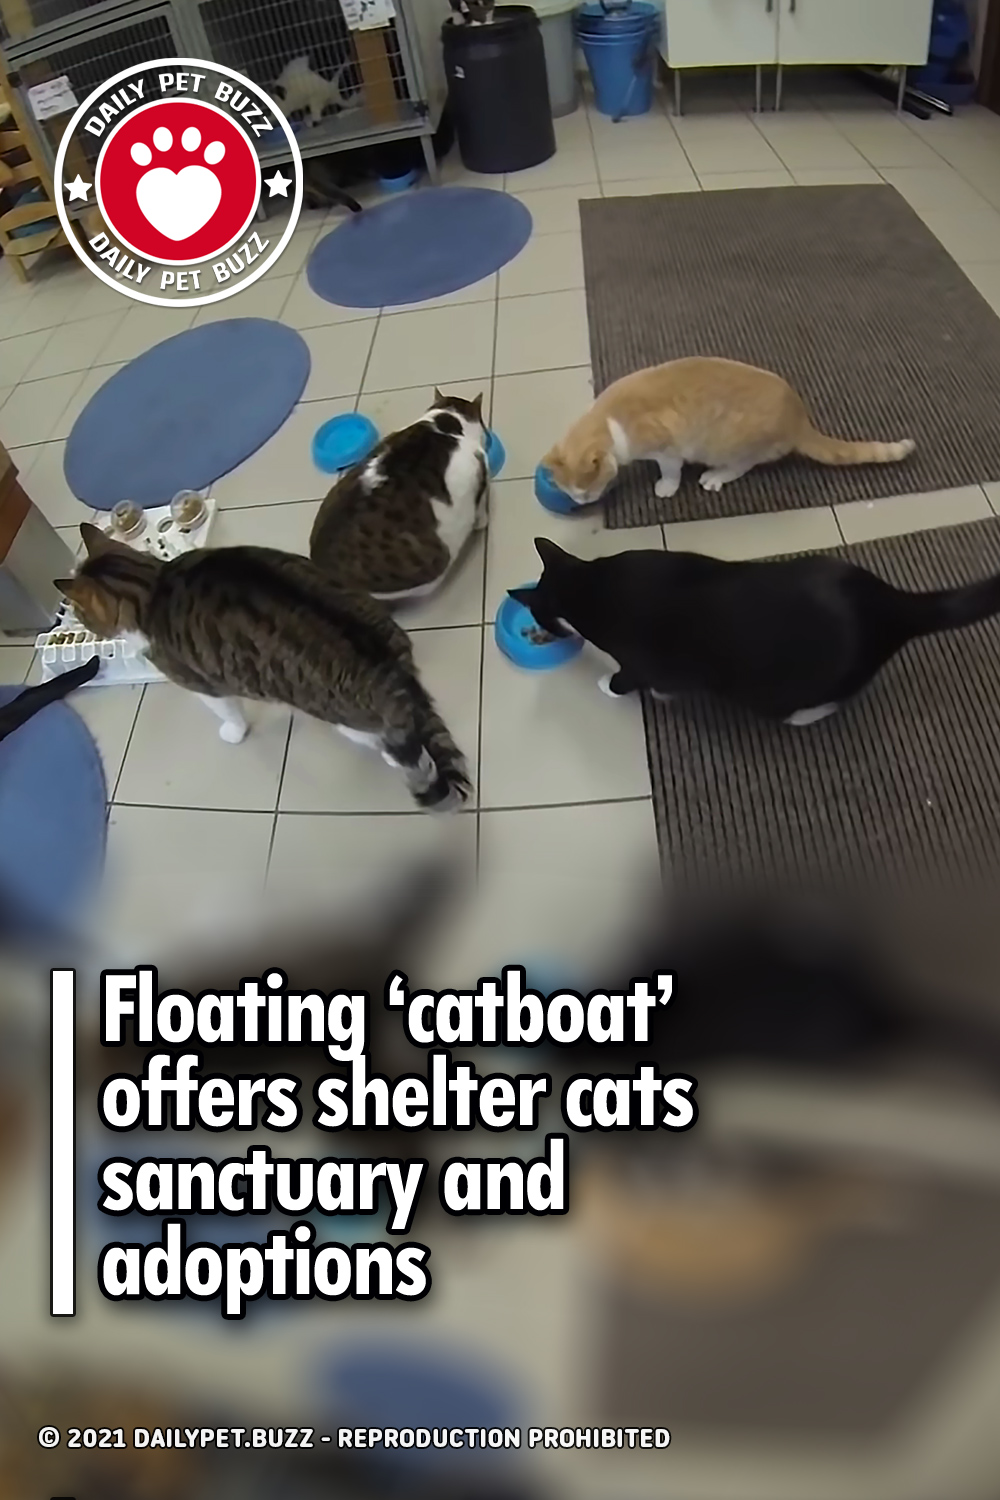 Floating 'catboat' offers shelter cats sanctuary and adoptions